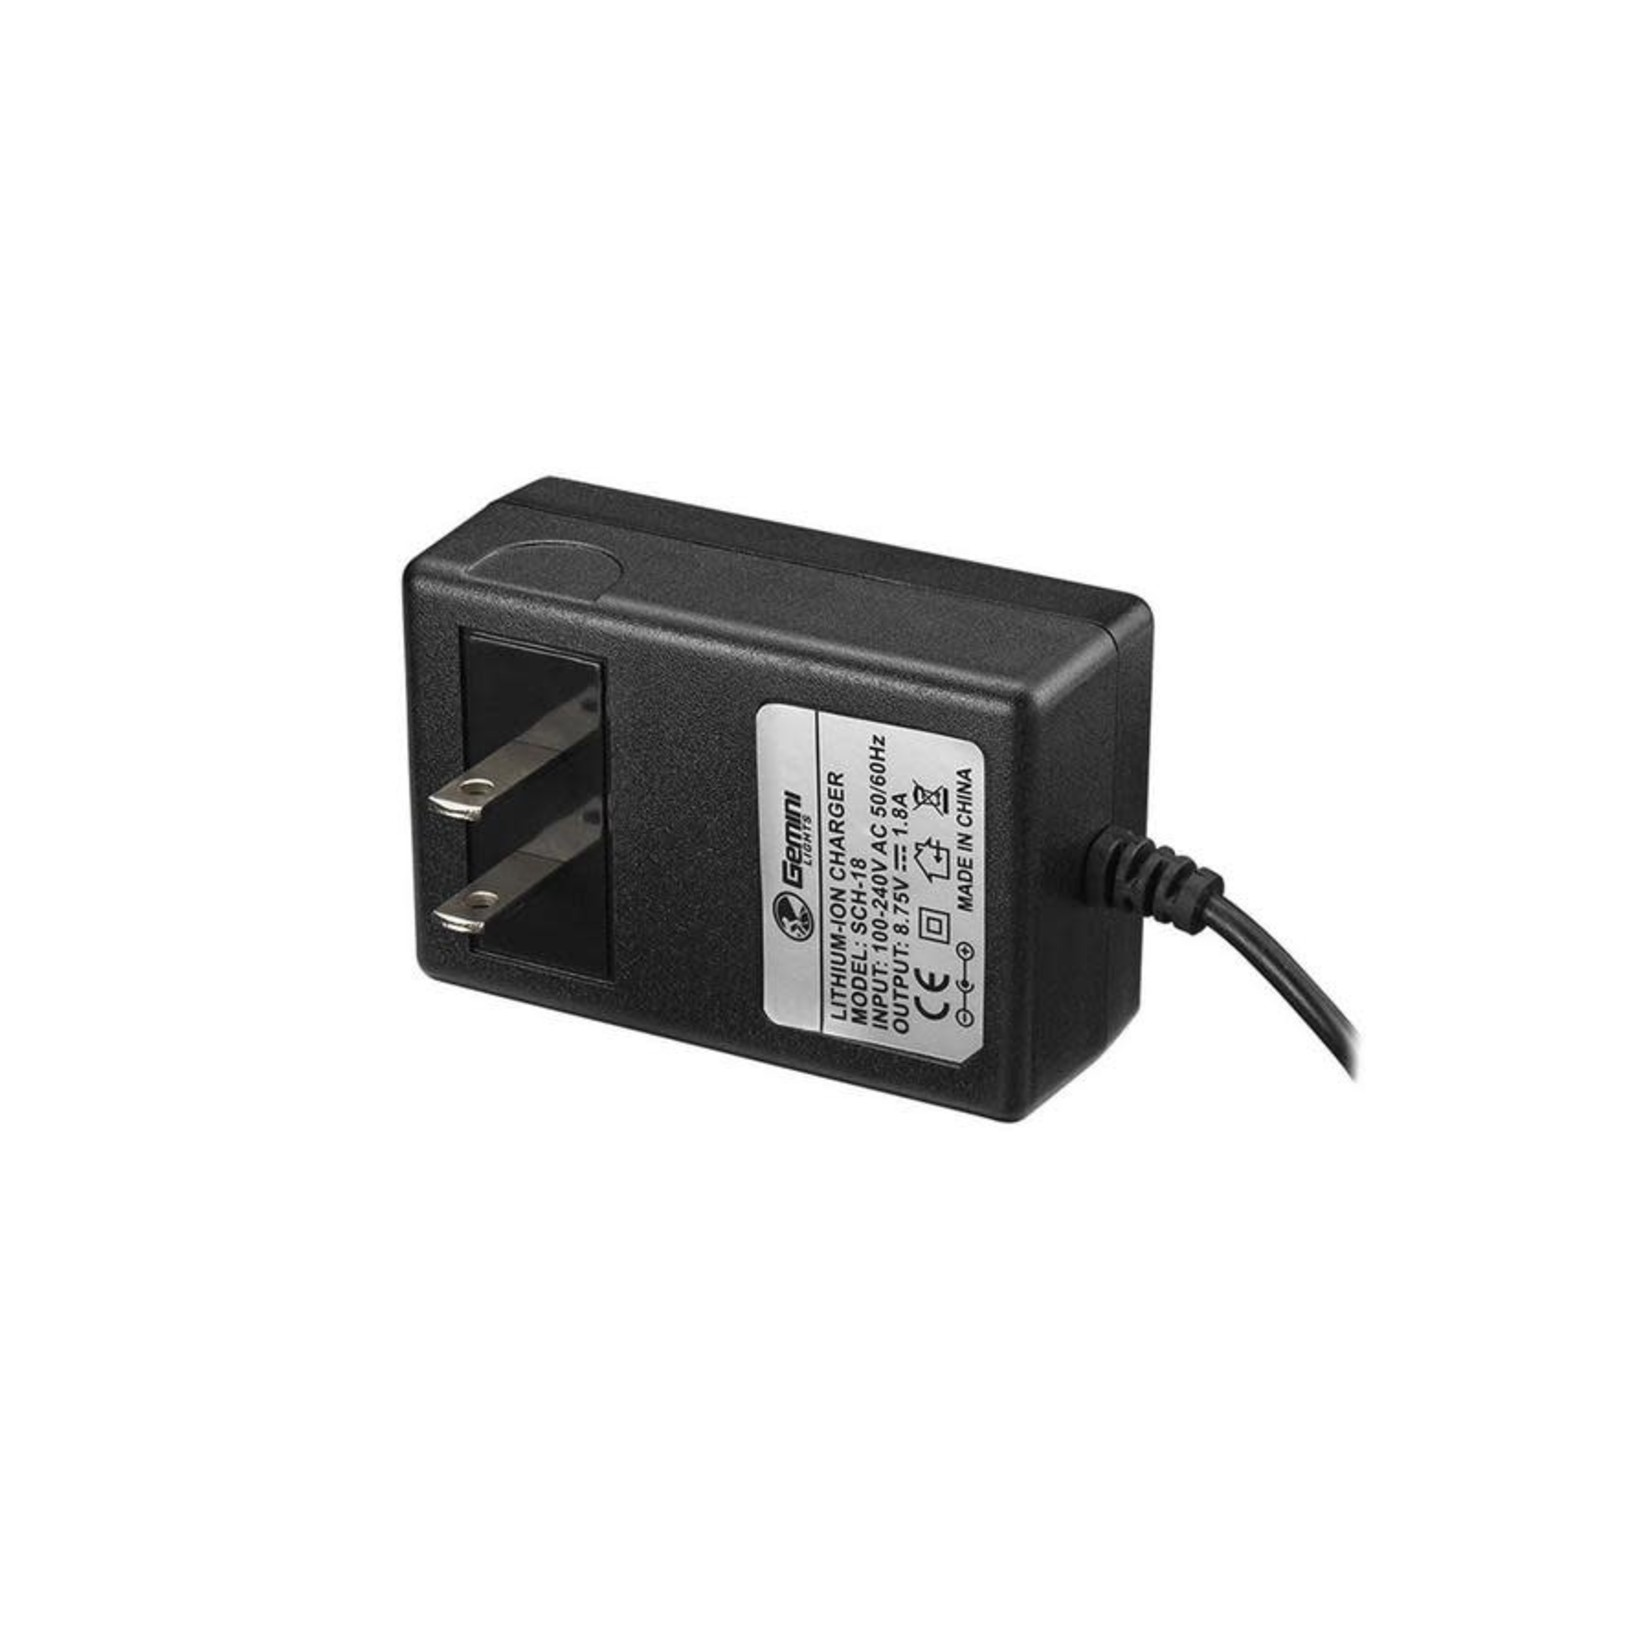 Gemini Gemini Lion Smart Charger